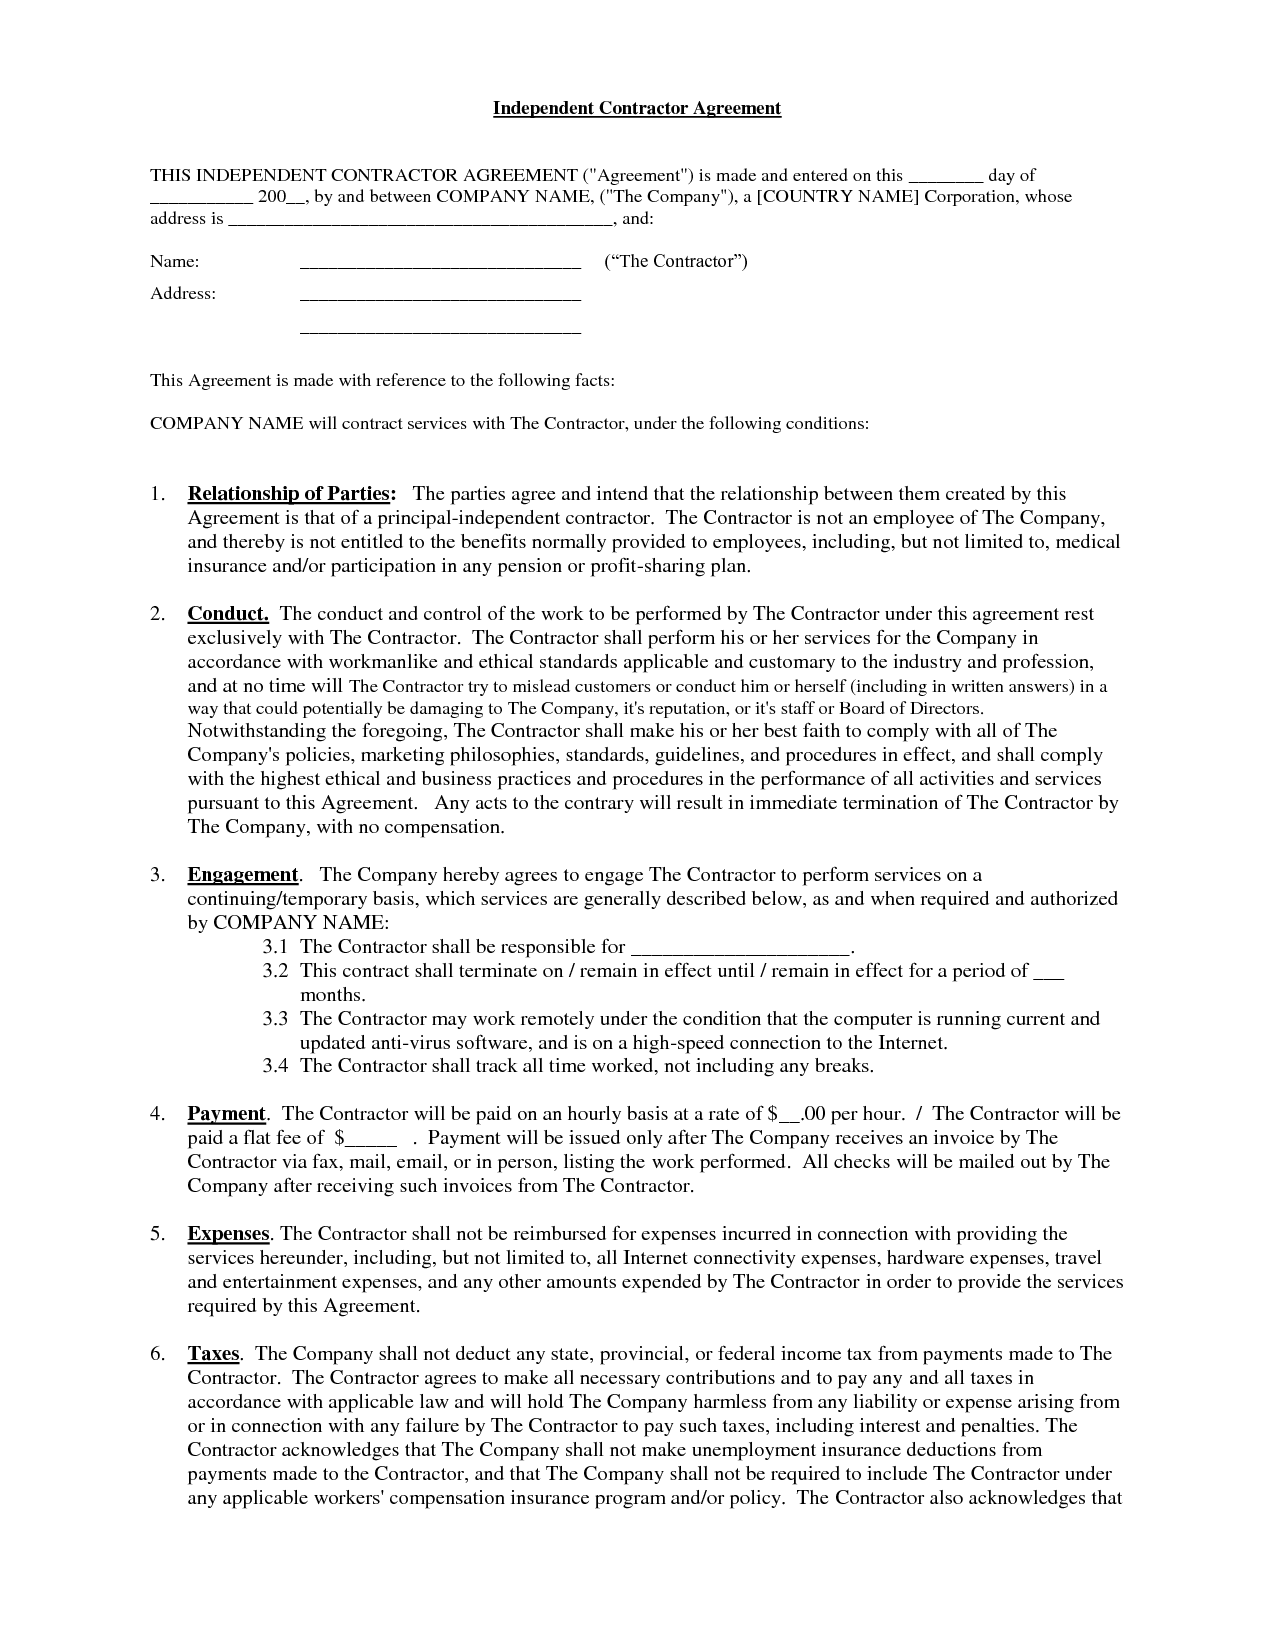 Independent Contractor Contract by BrittanyGibbons contractor – Independent Agreement Contract